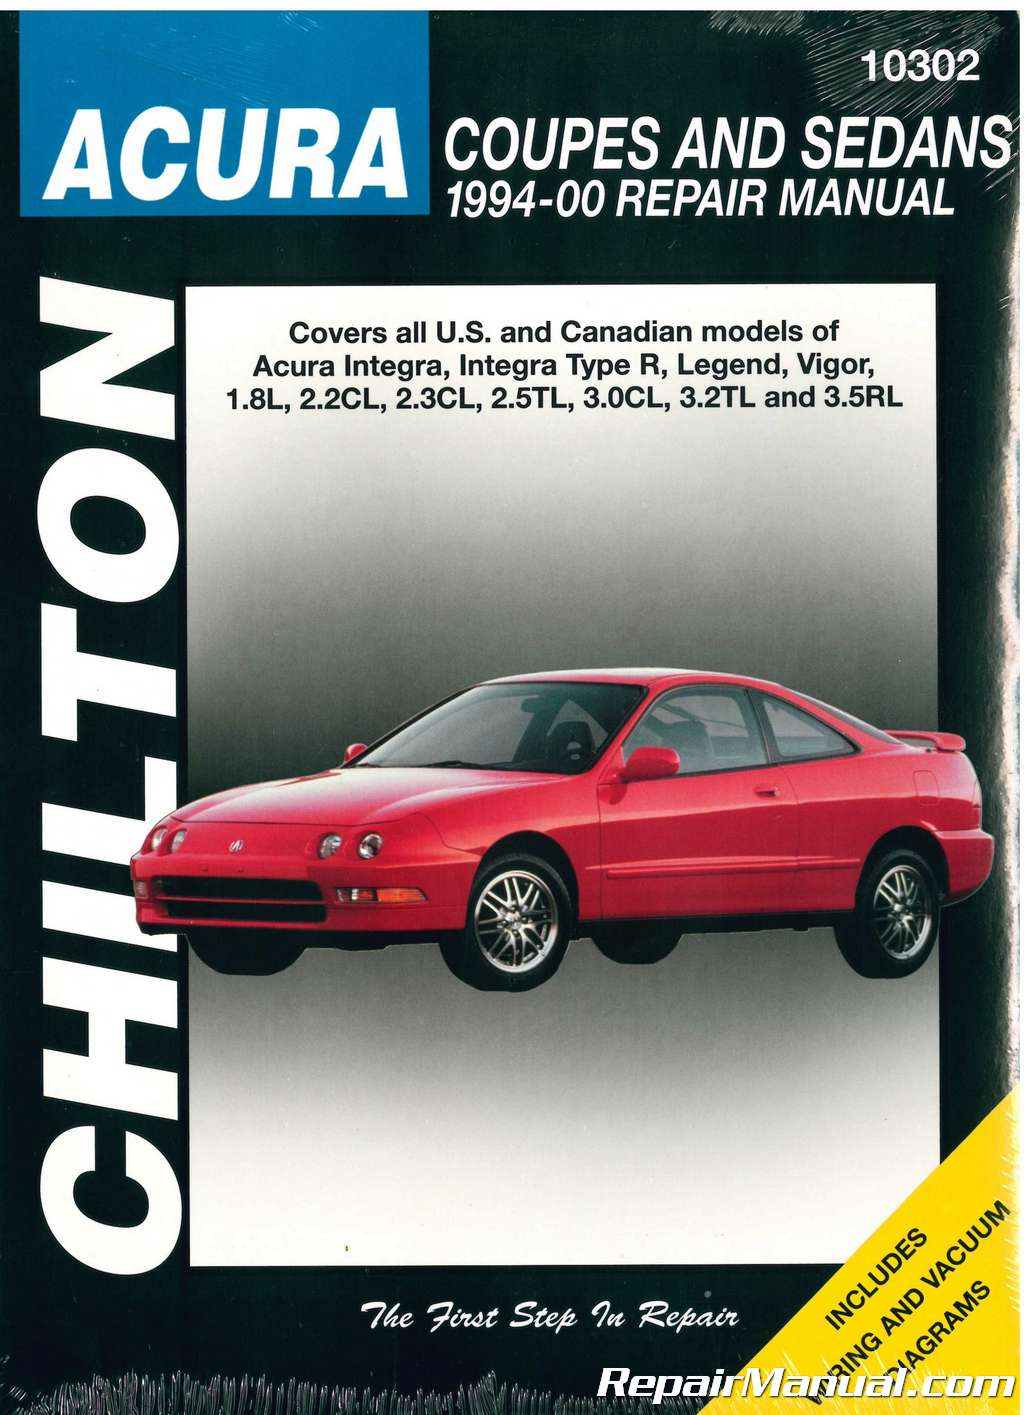 Chilton Acura Coupes And Sedans Repair Manual